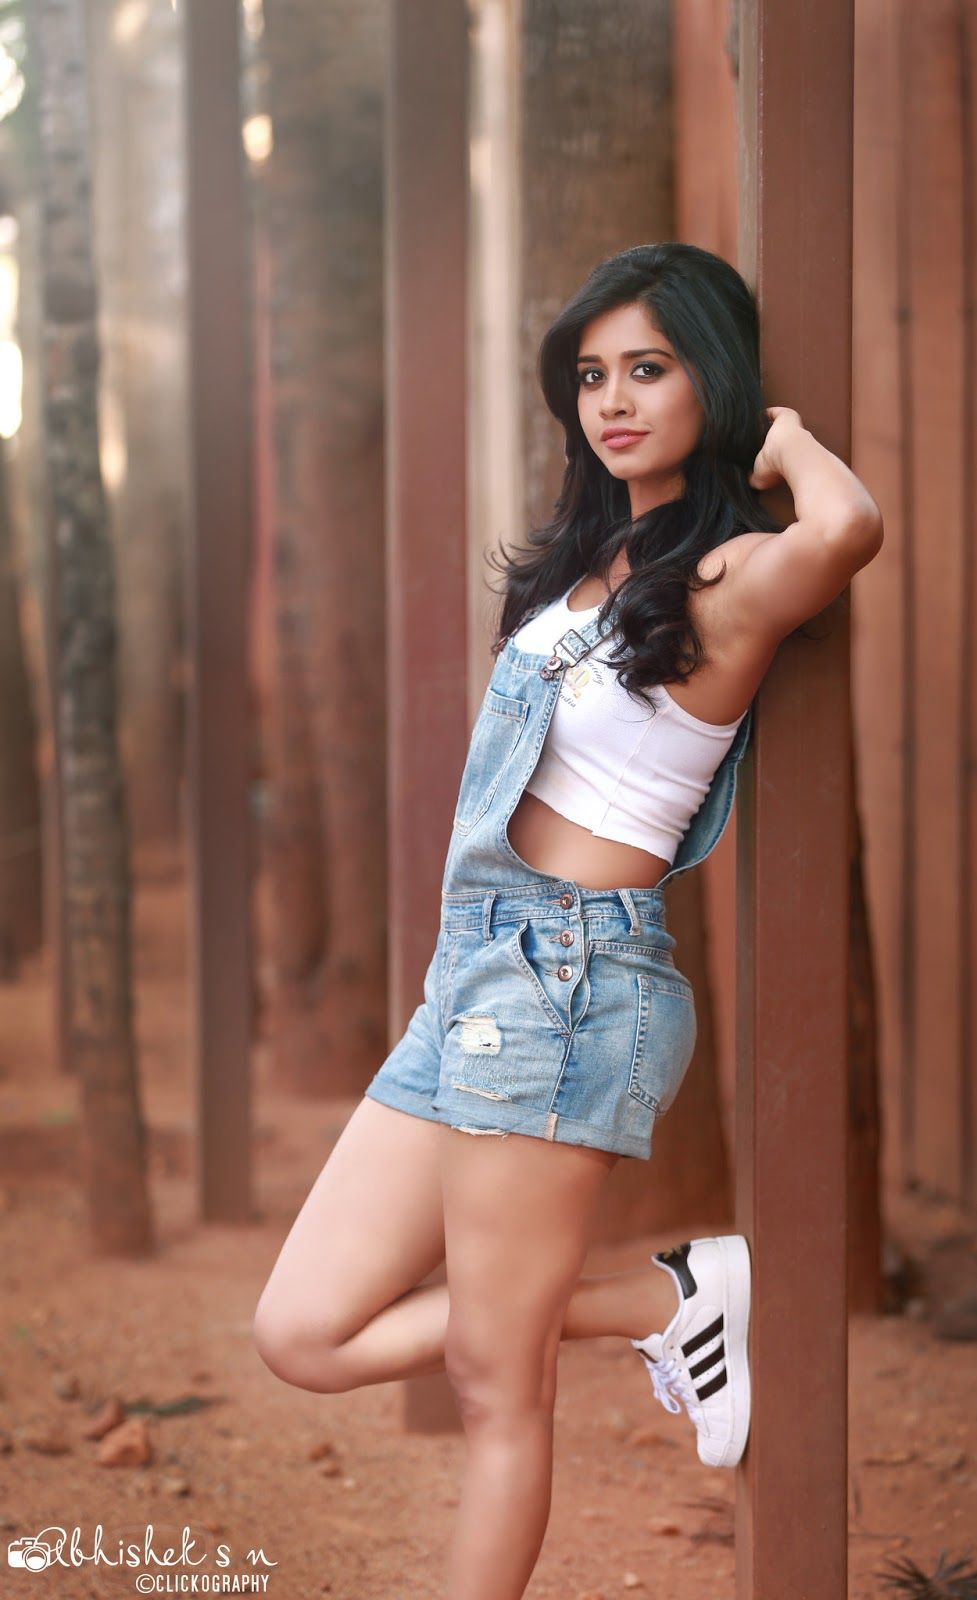 Hot nude south indian young teen girl